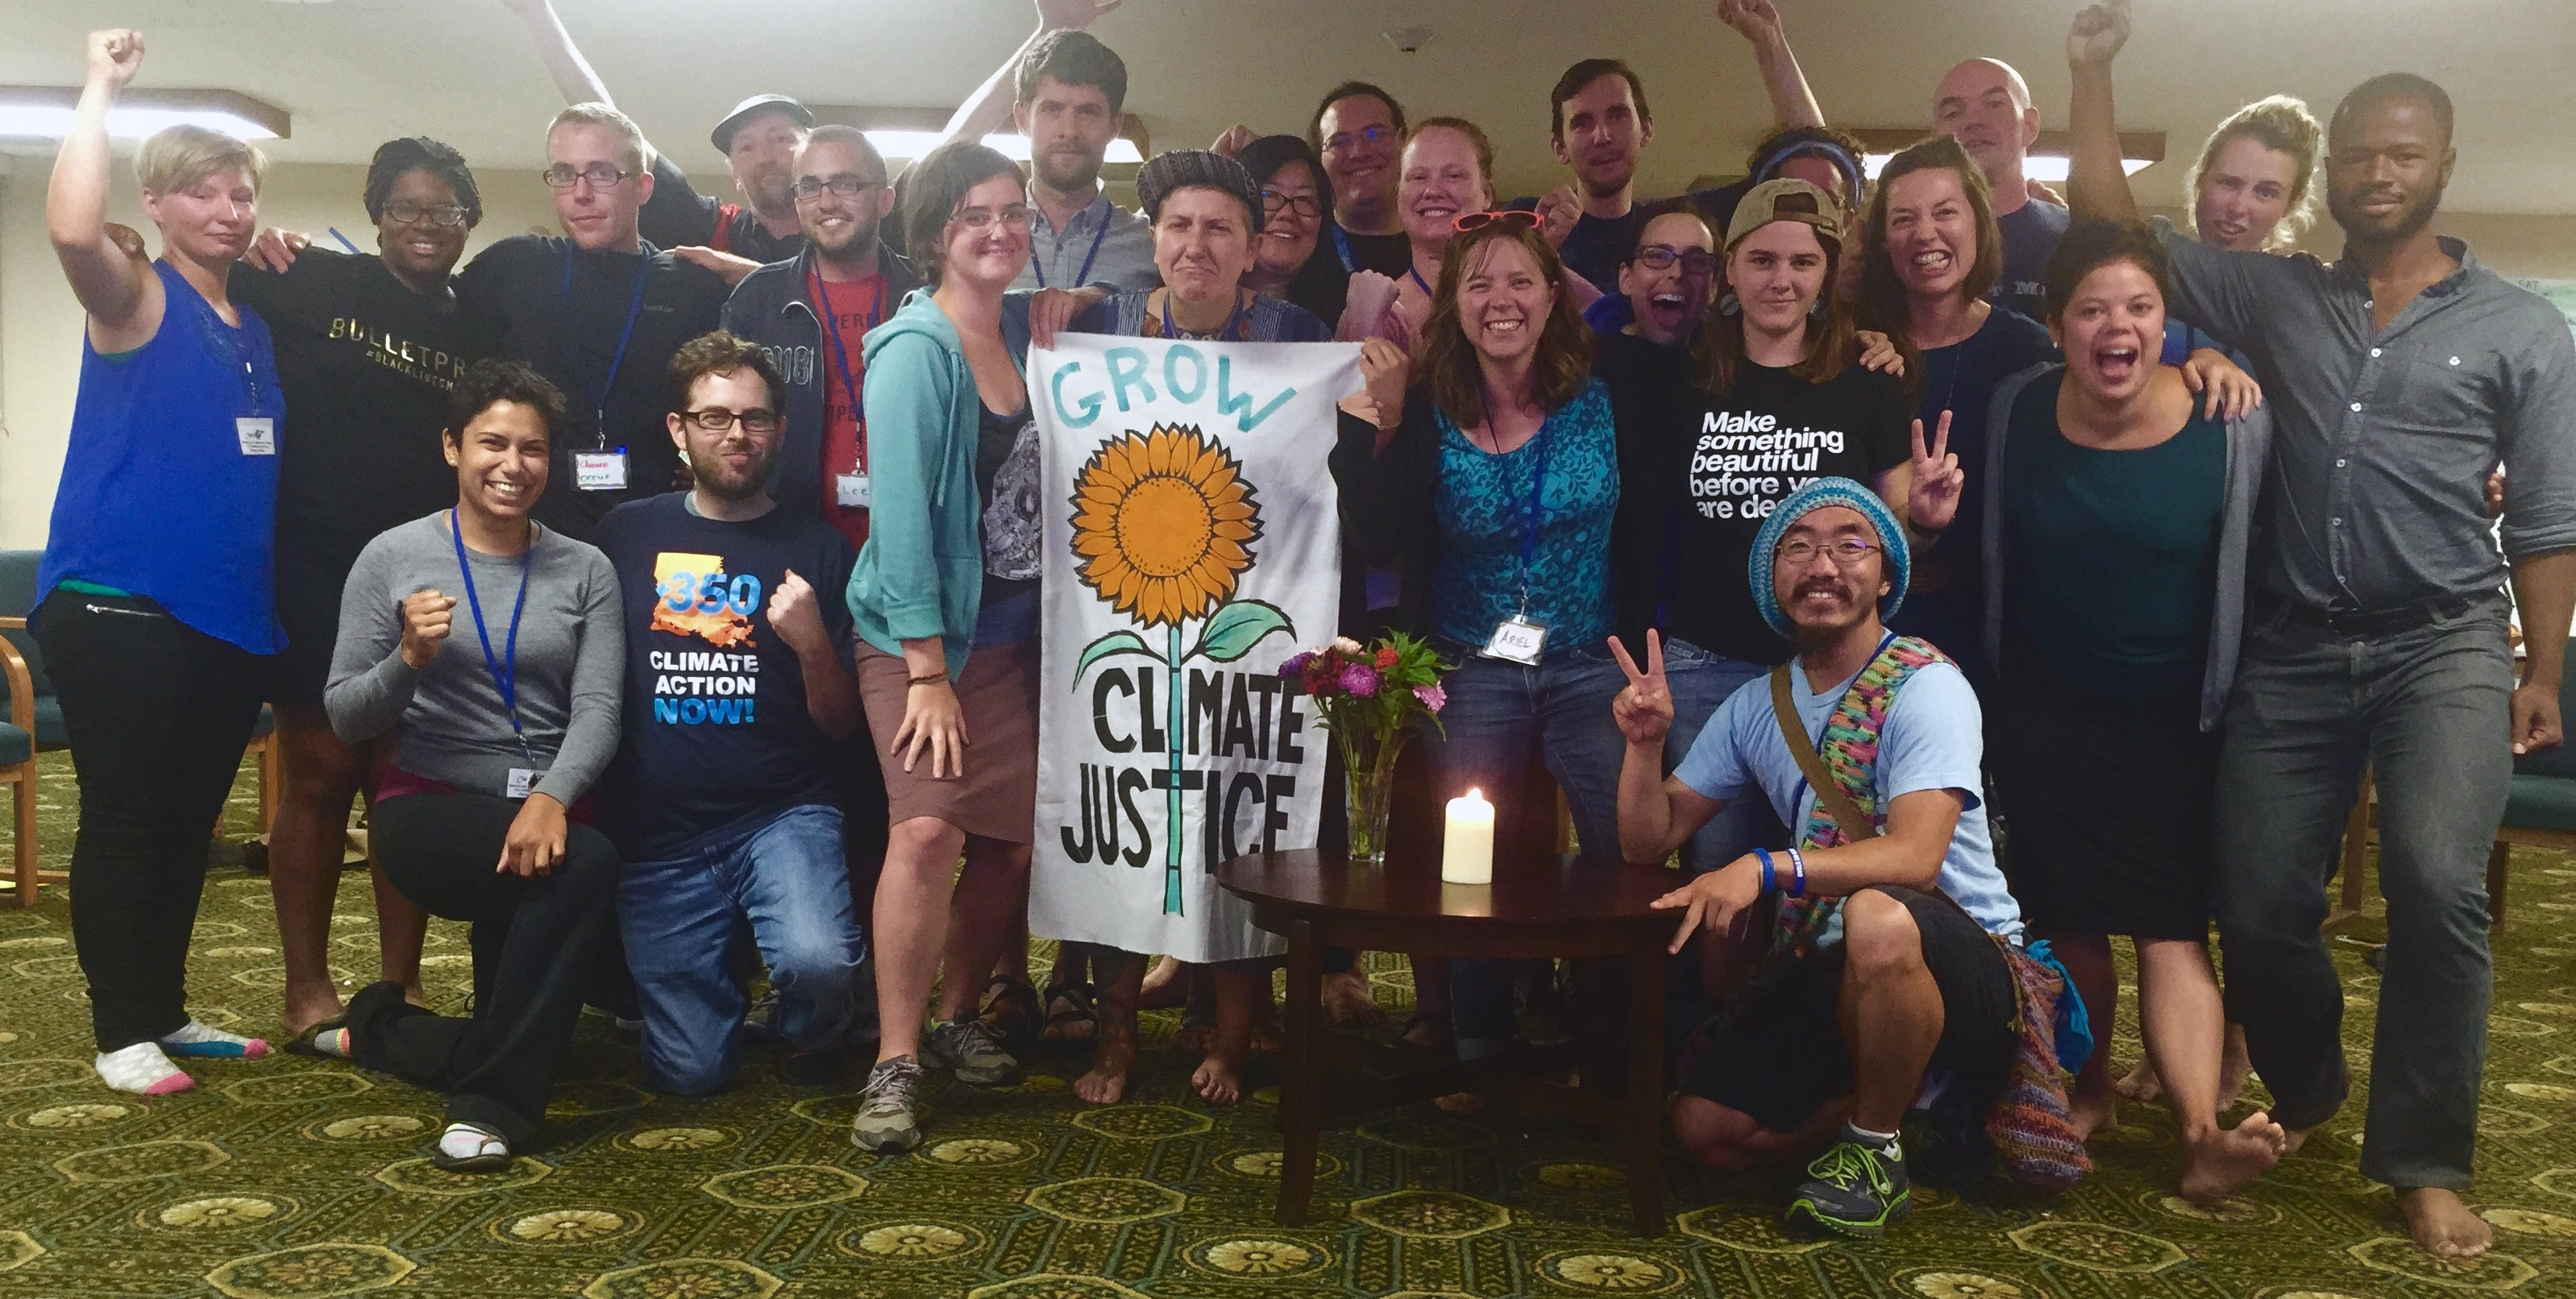 Growing Climate Justice!